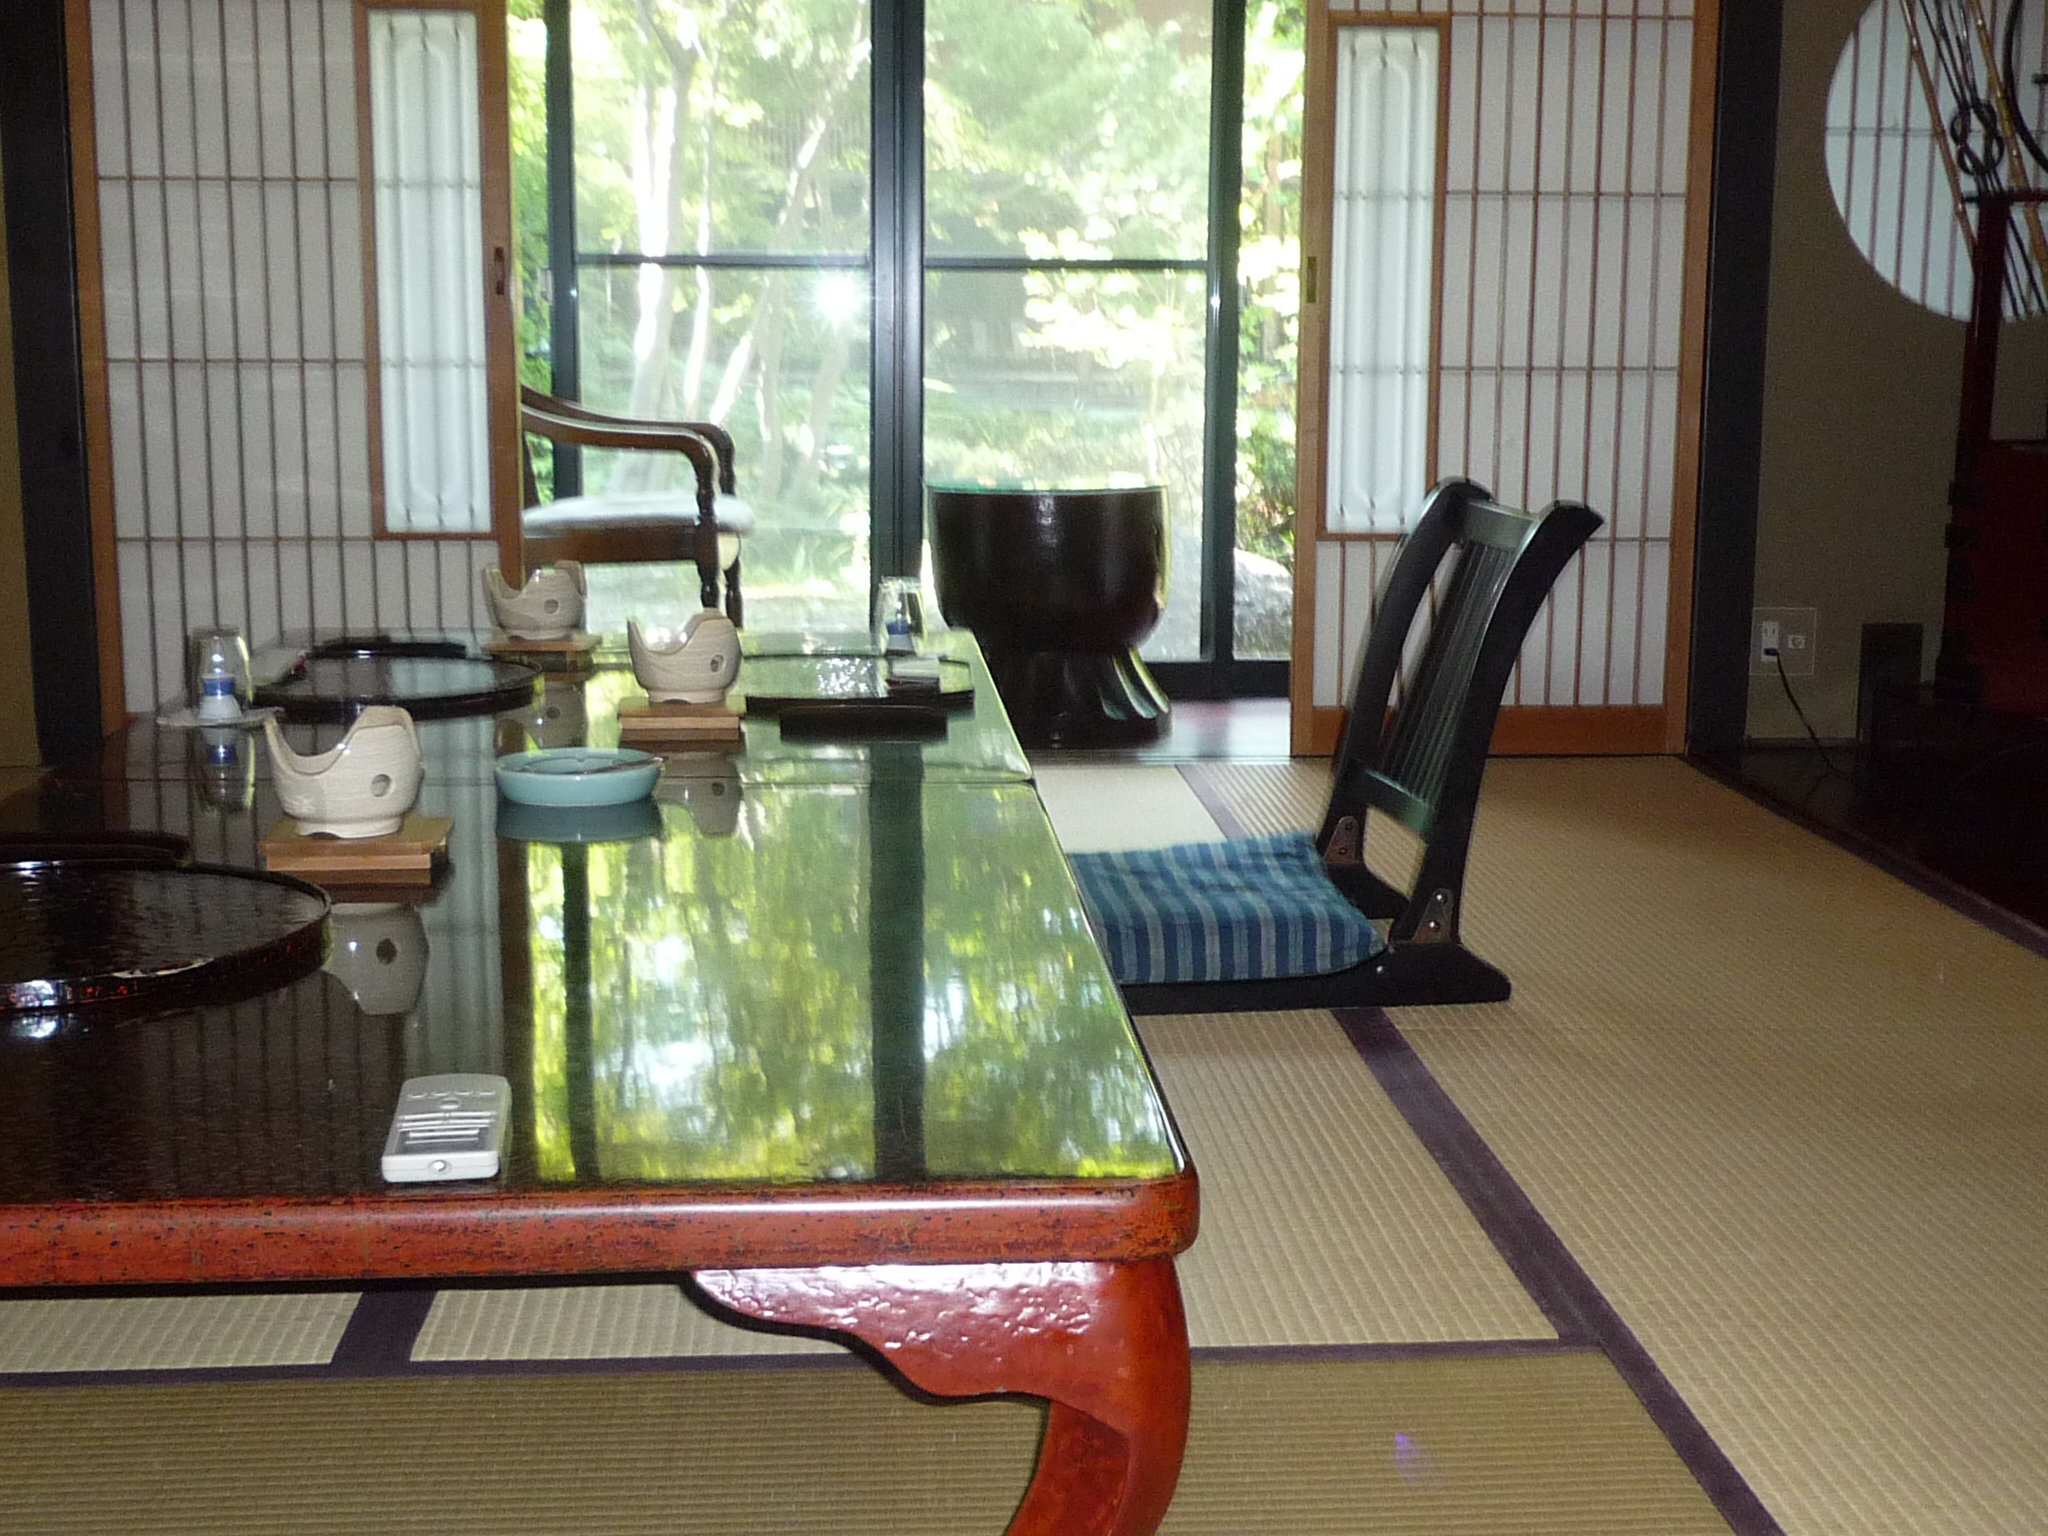 Ryokan-Traditional Japanese style inns with Tatami floors and Futon beds